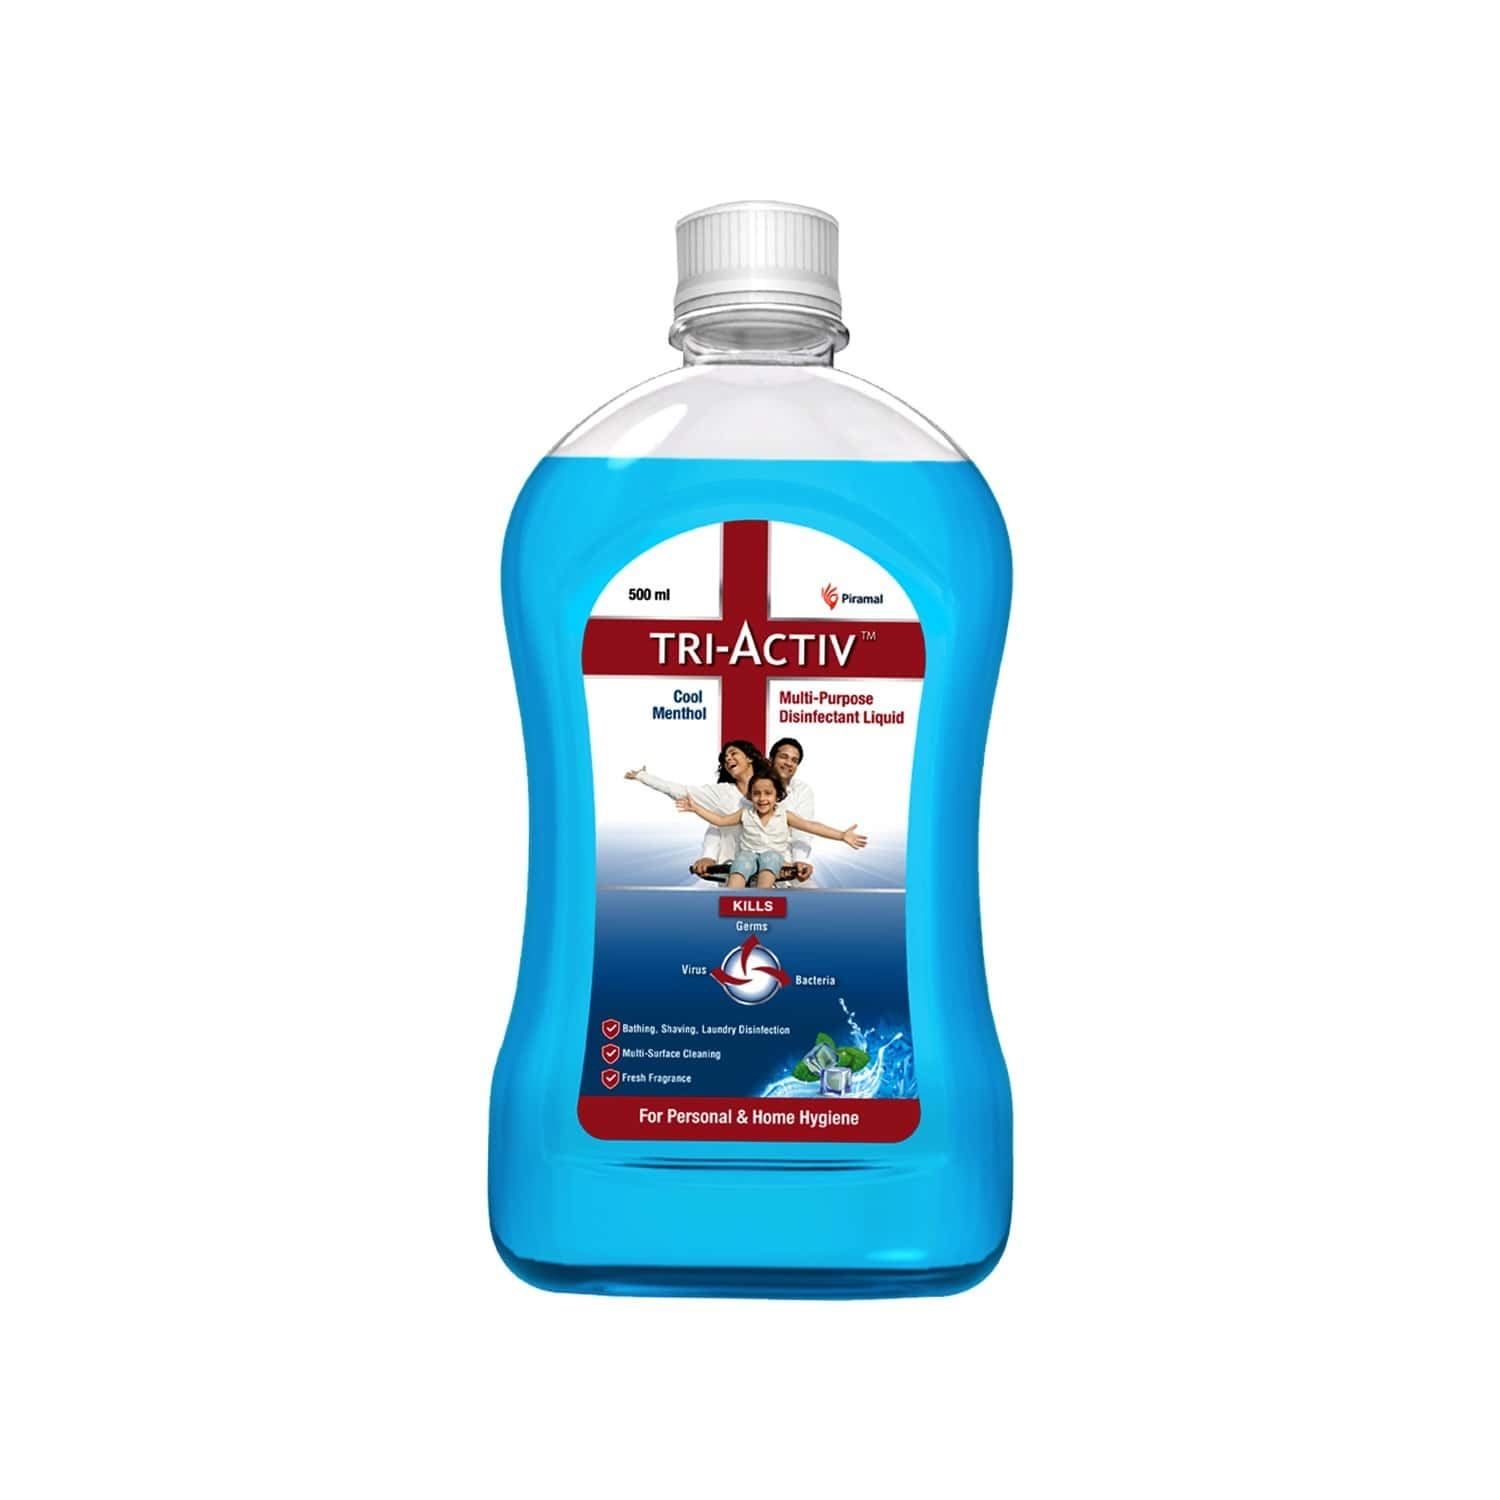 Tri-activ Multipurpose Disinfectant Liquid For Personal And Home Hygiene ( Cool Menthol ) - 500ml